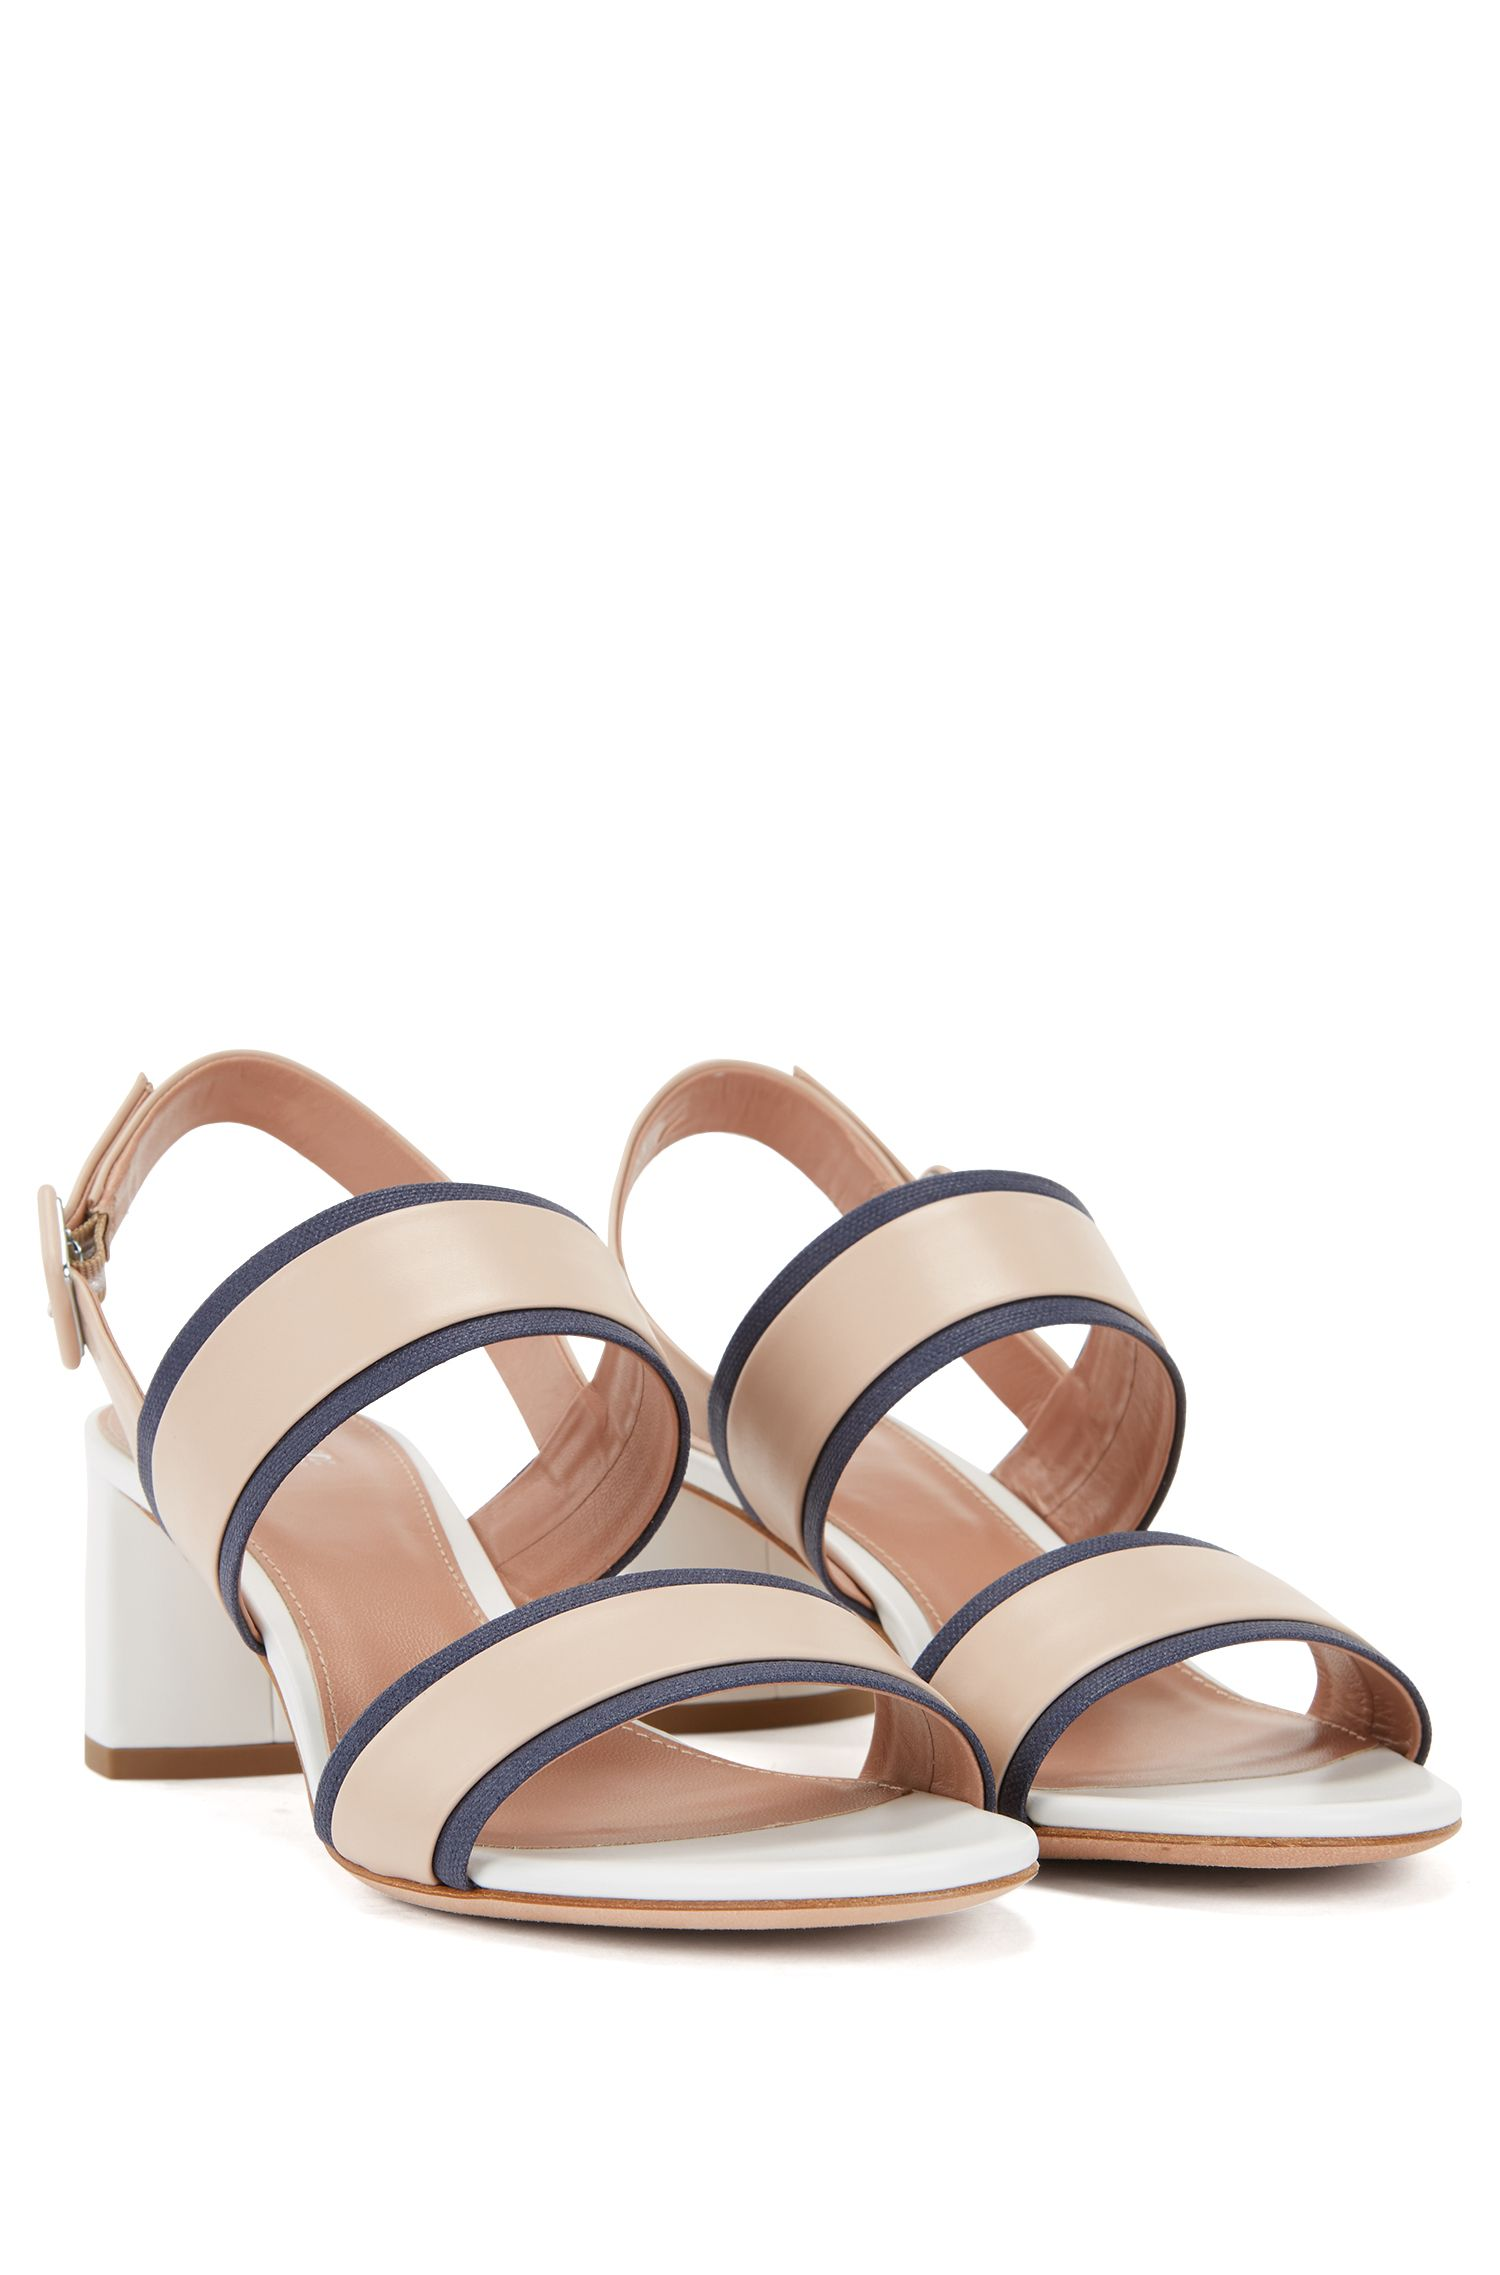 Italian calf-leather sandals with canvas trim